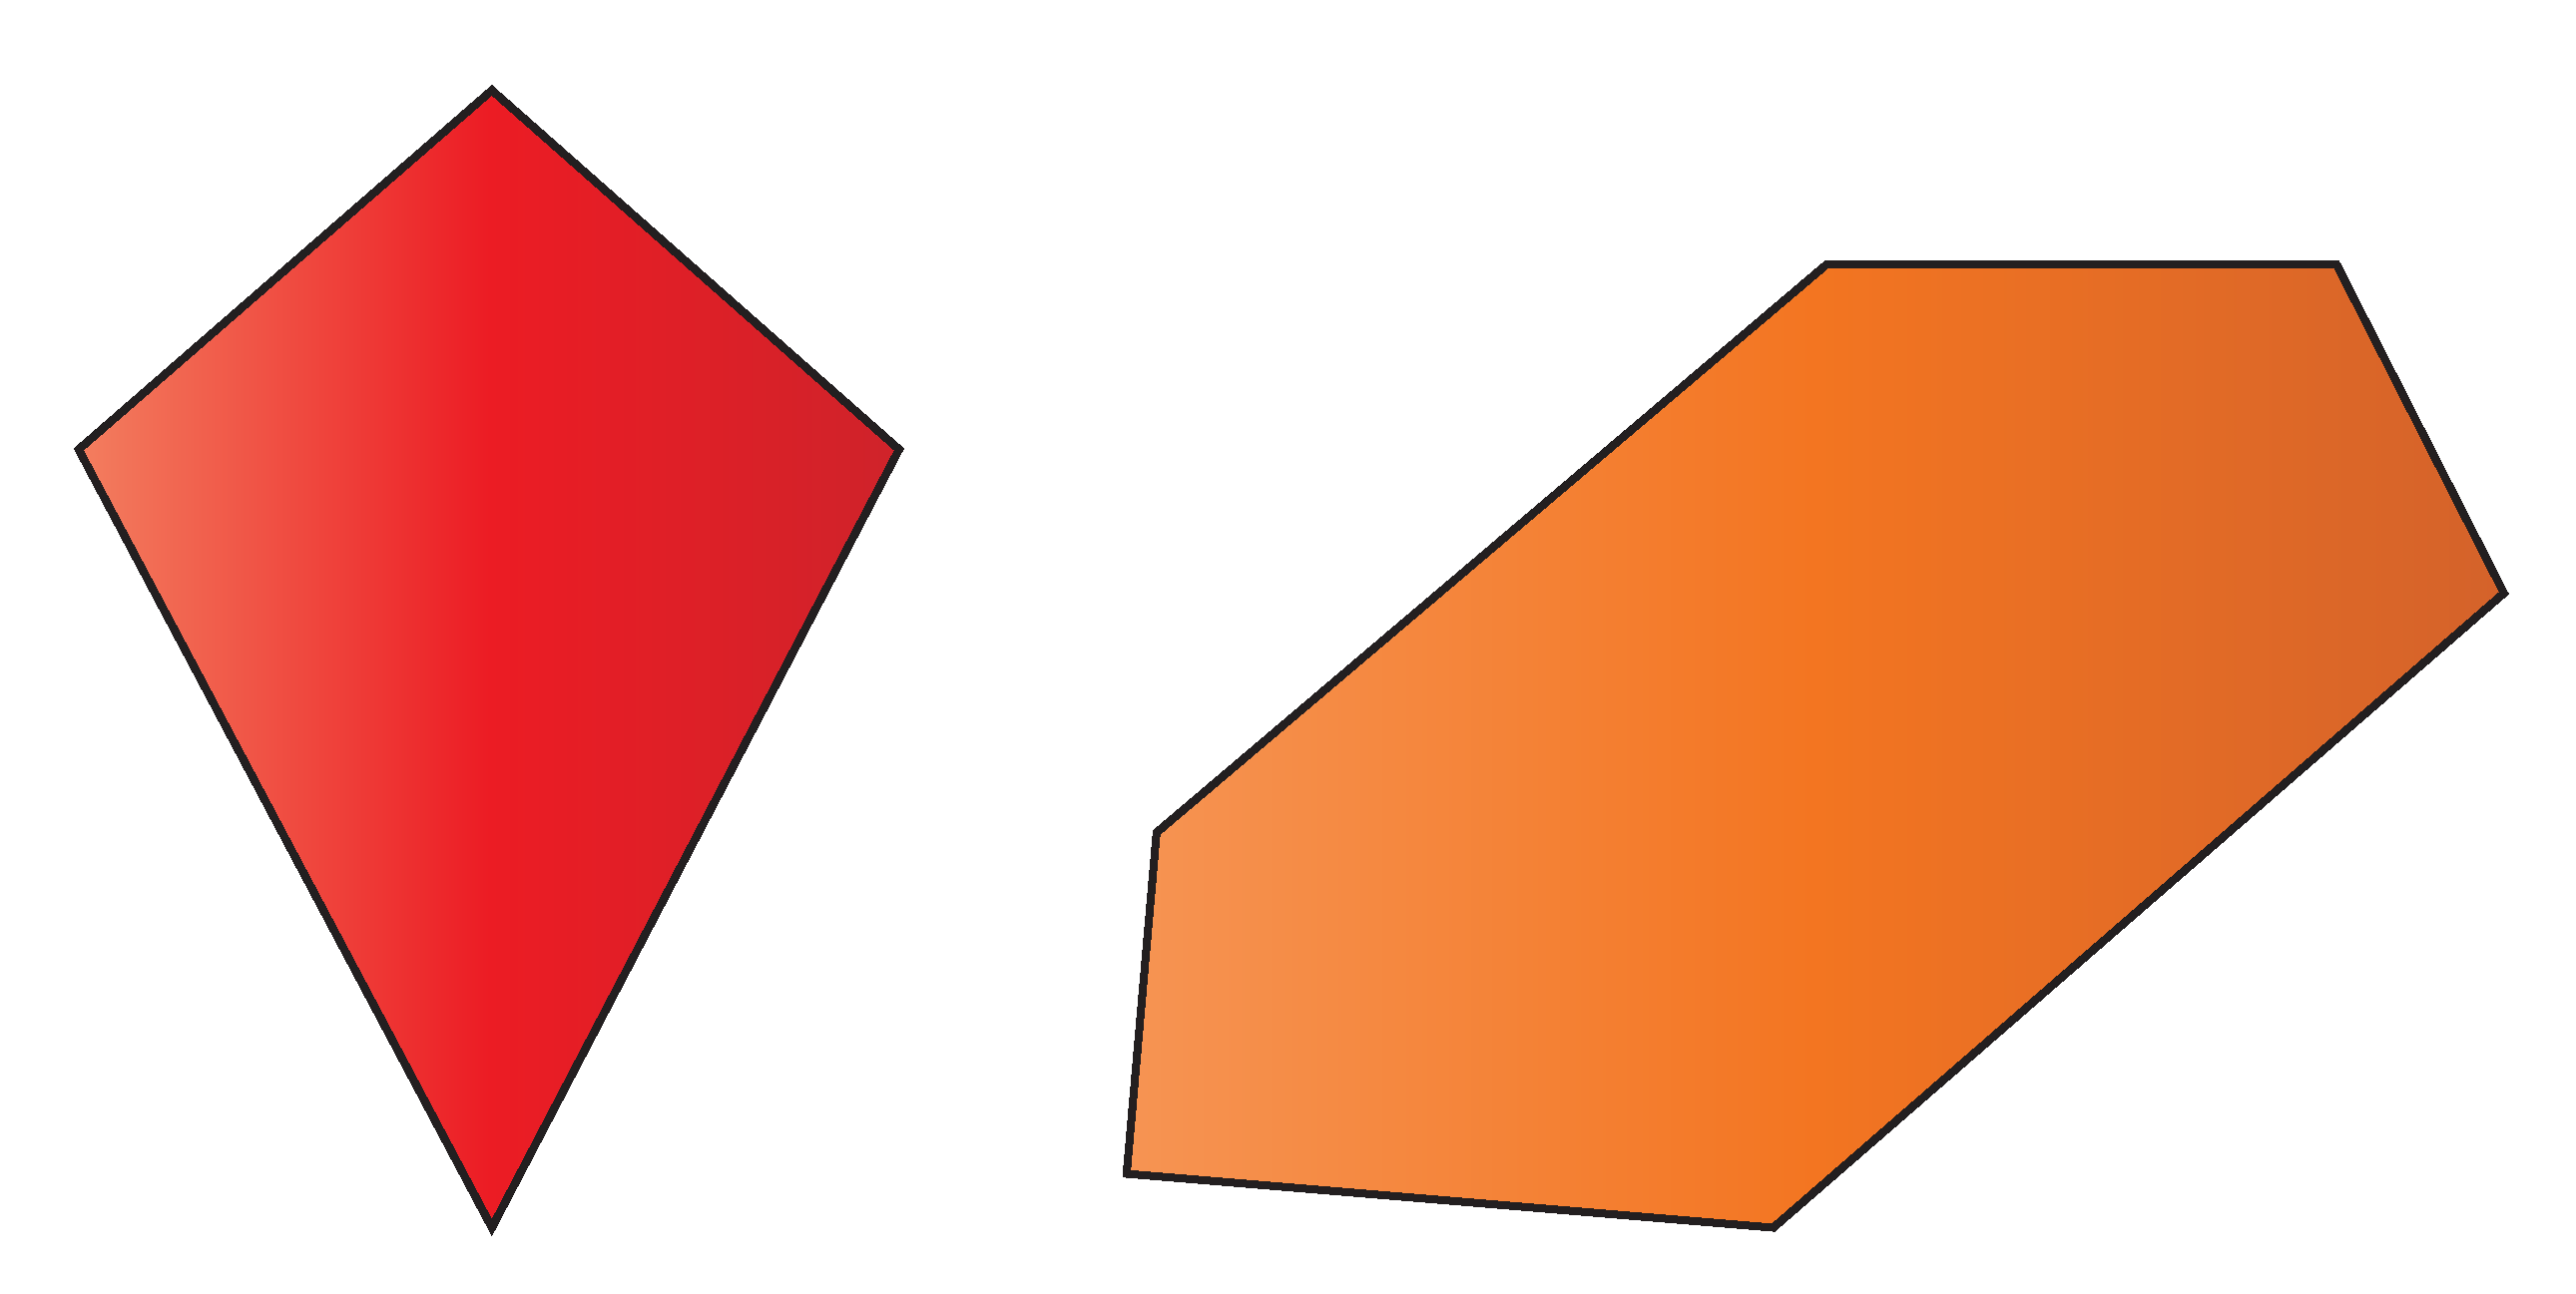 Convex Polygons